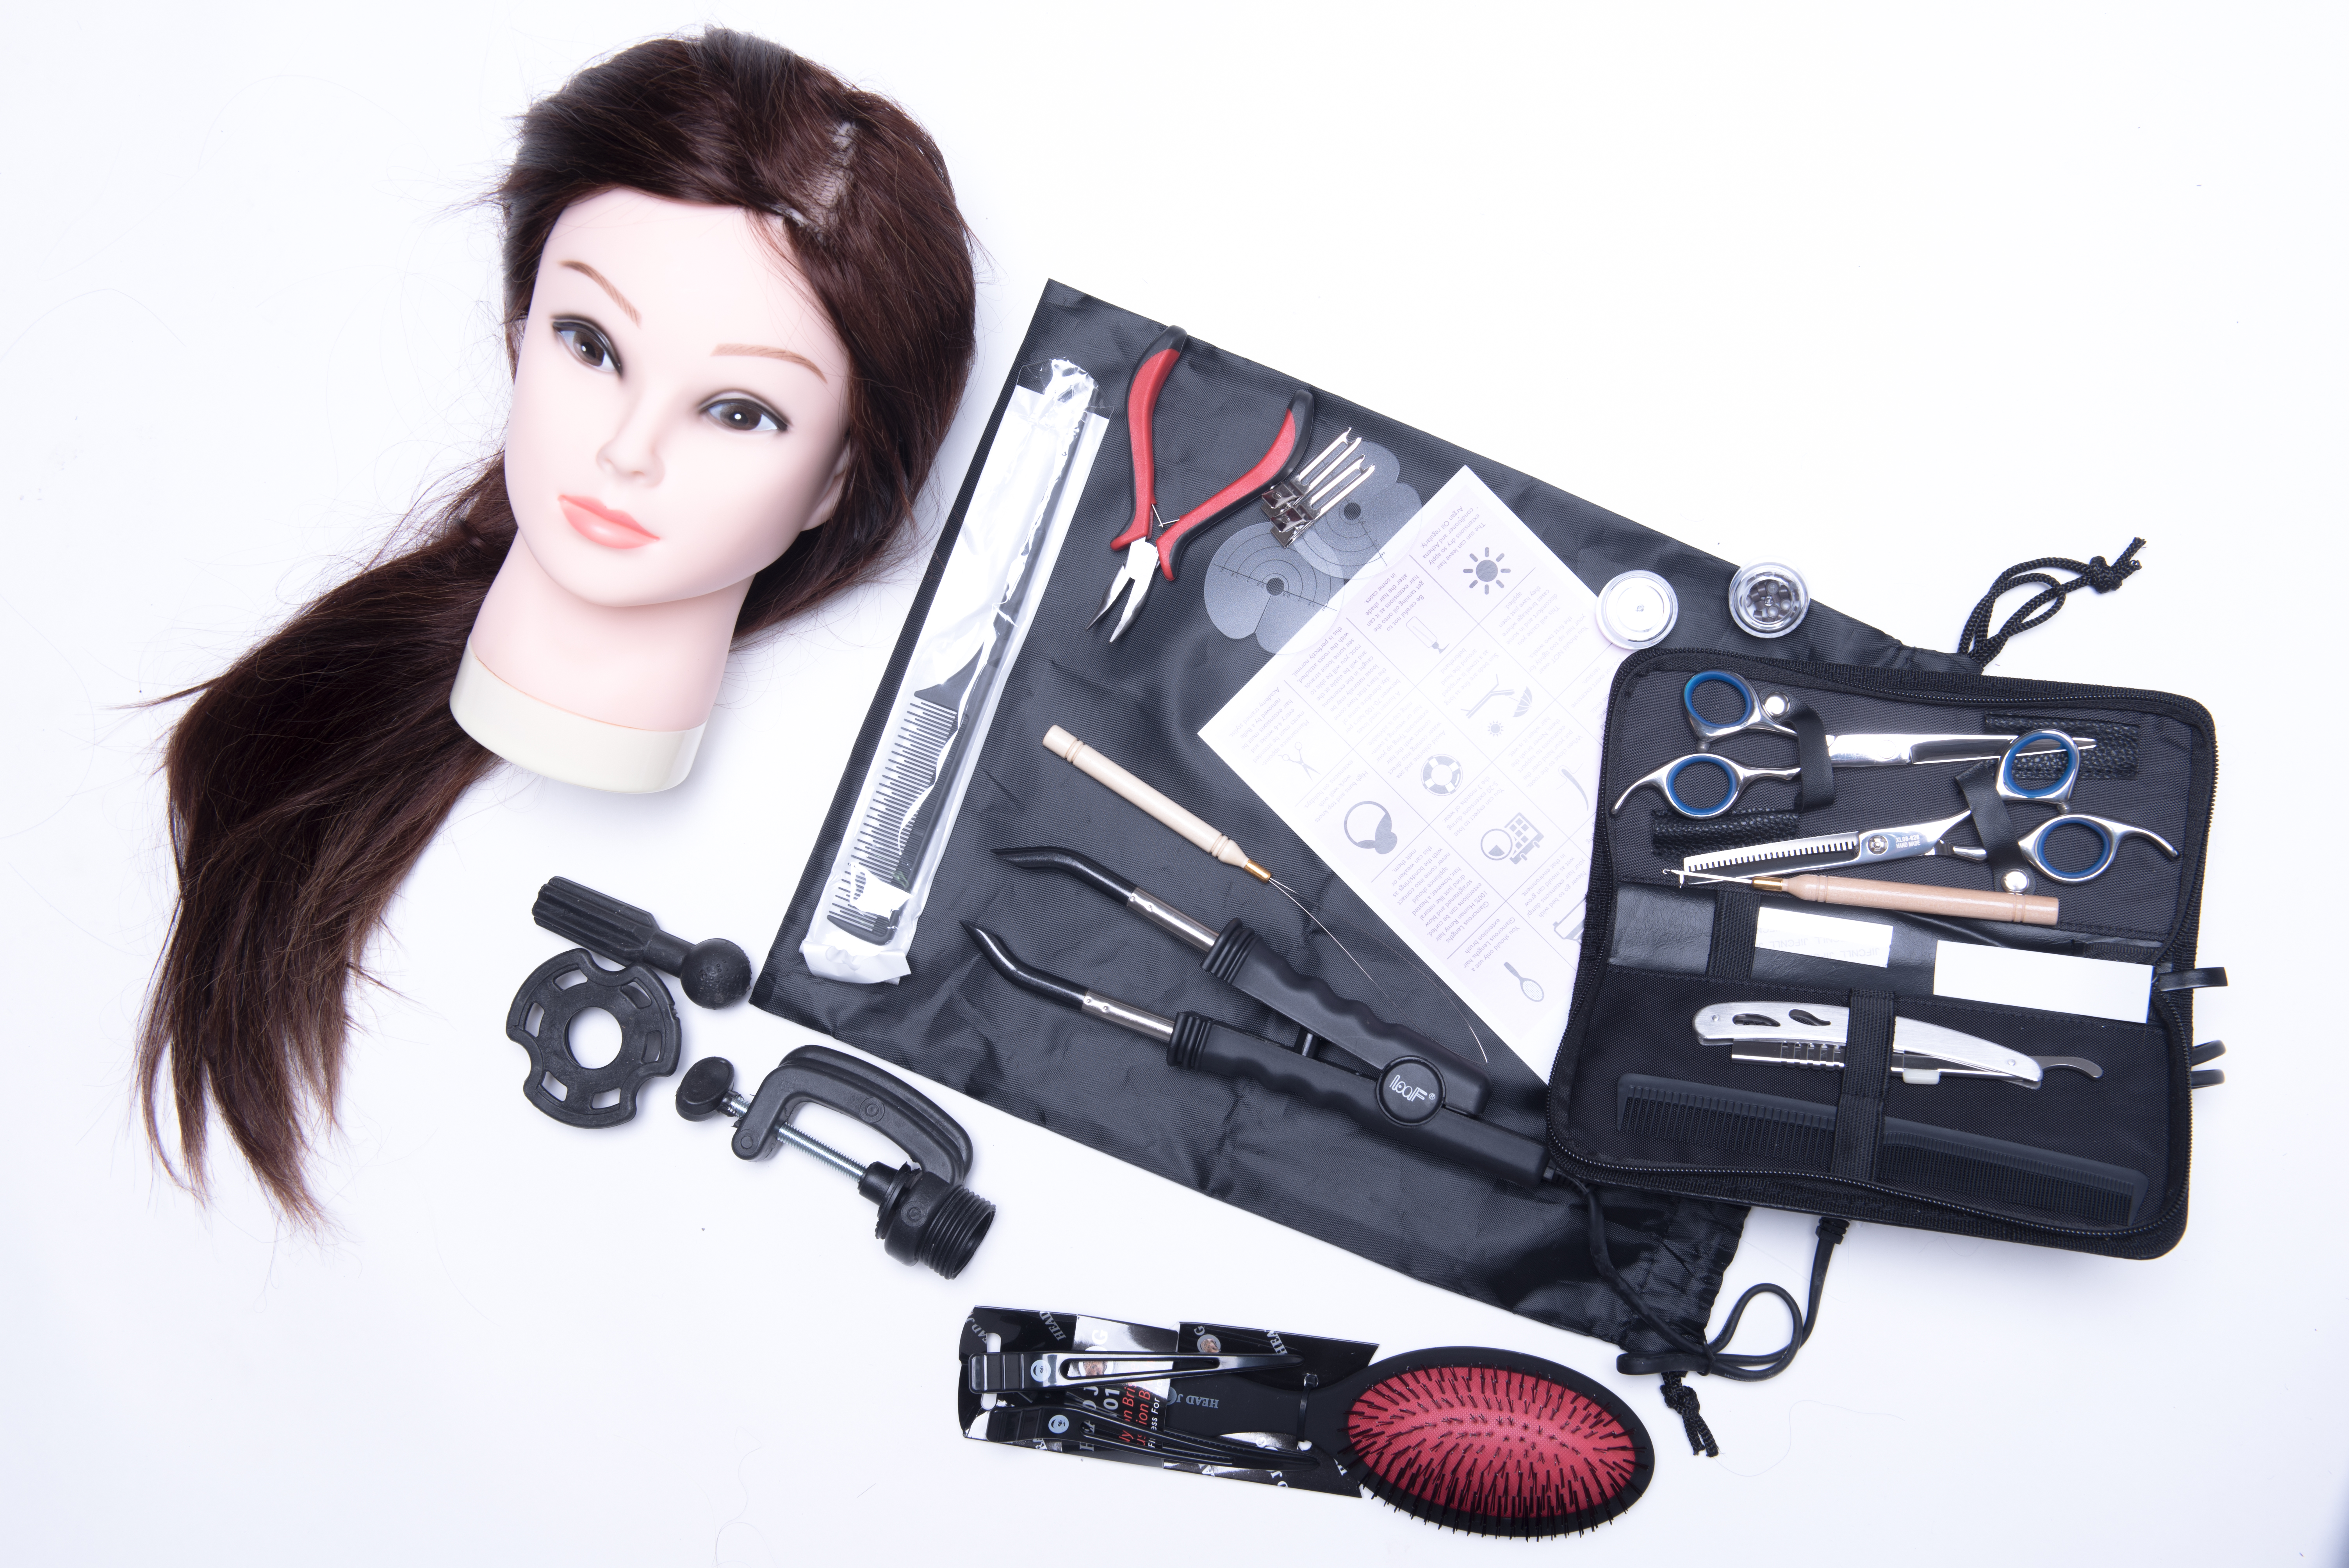 Hair extension kit for students who take our hair extension courses.